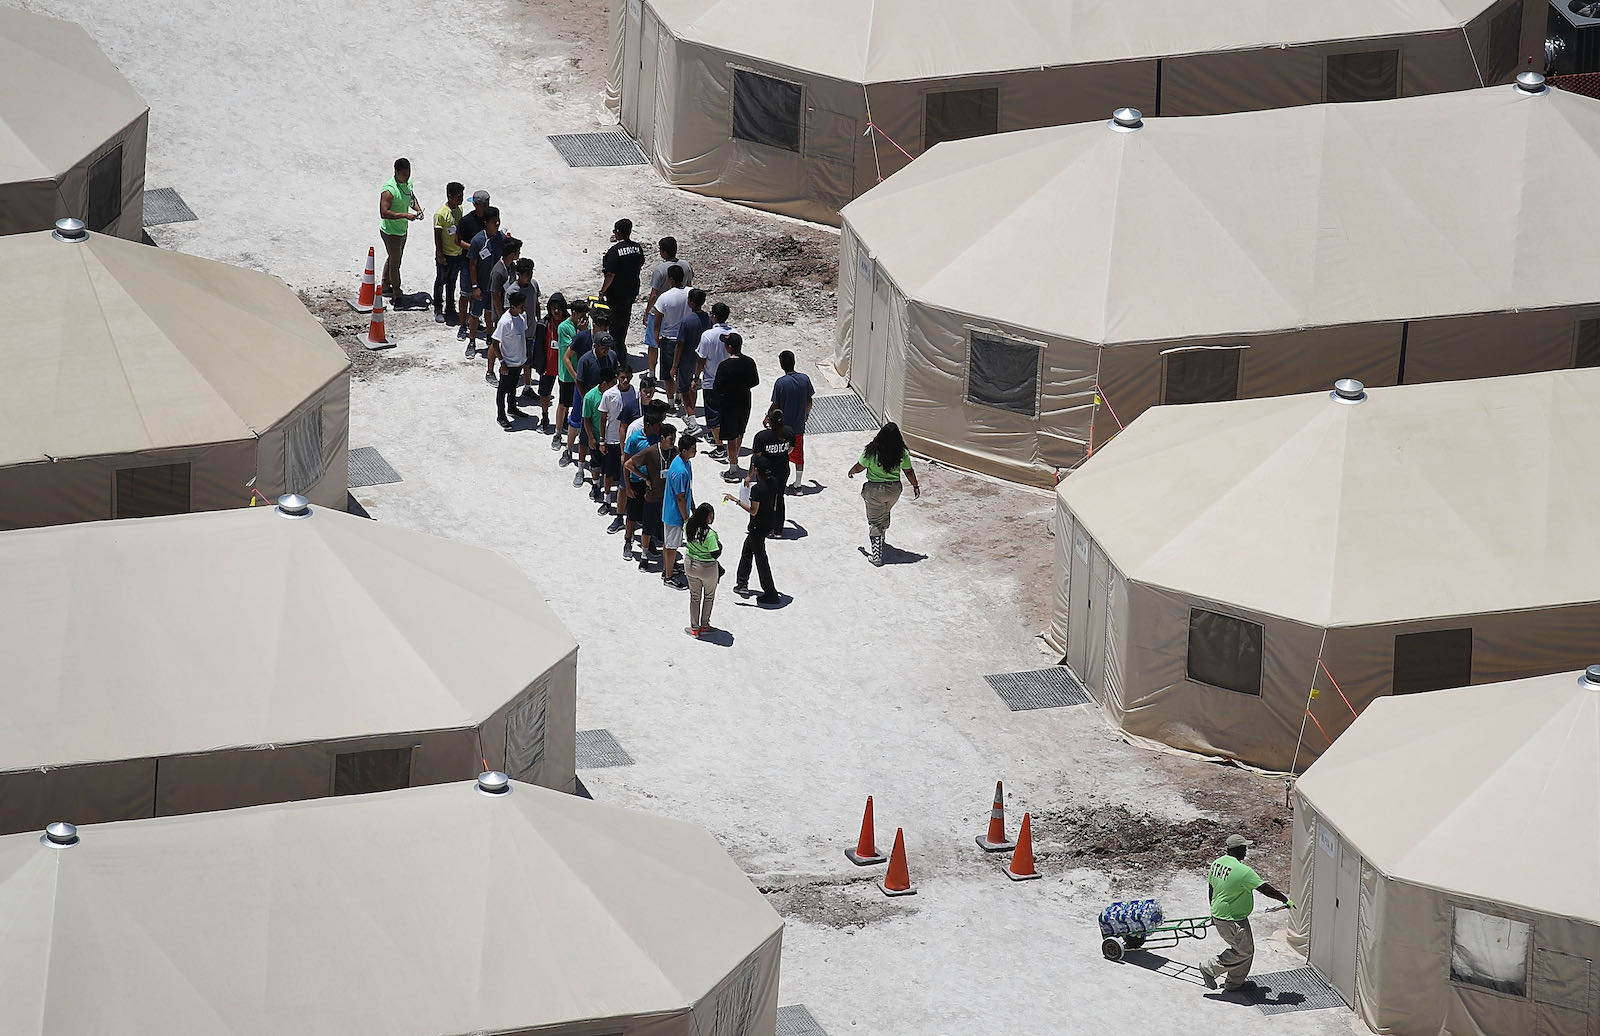 Migrant children lining up at a tent encampment detention facility, Texas, 2018